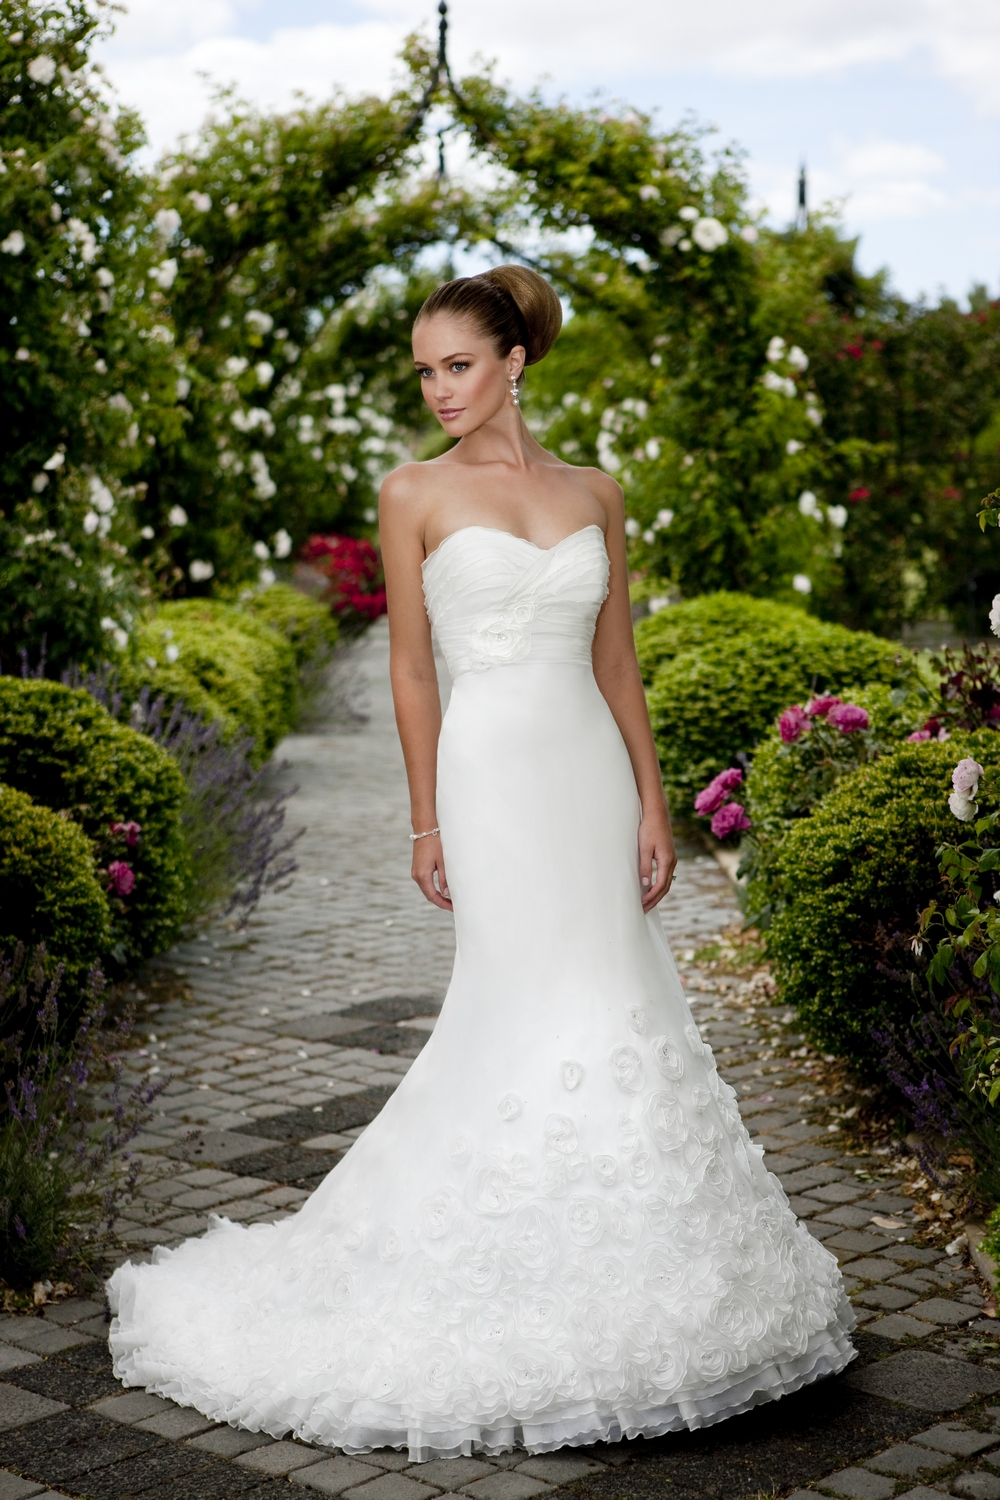 Essense-of-australia-wedding-dresses-2010-2011-d1073.original